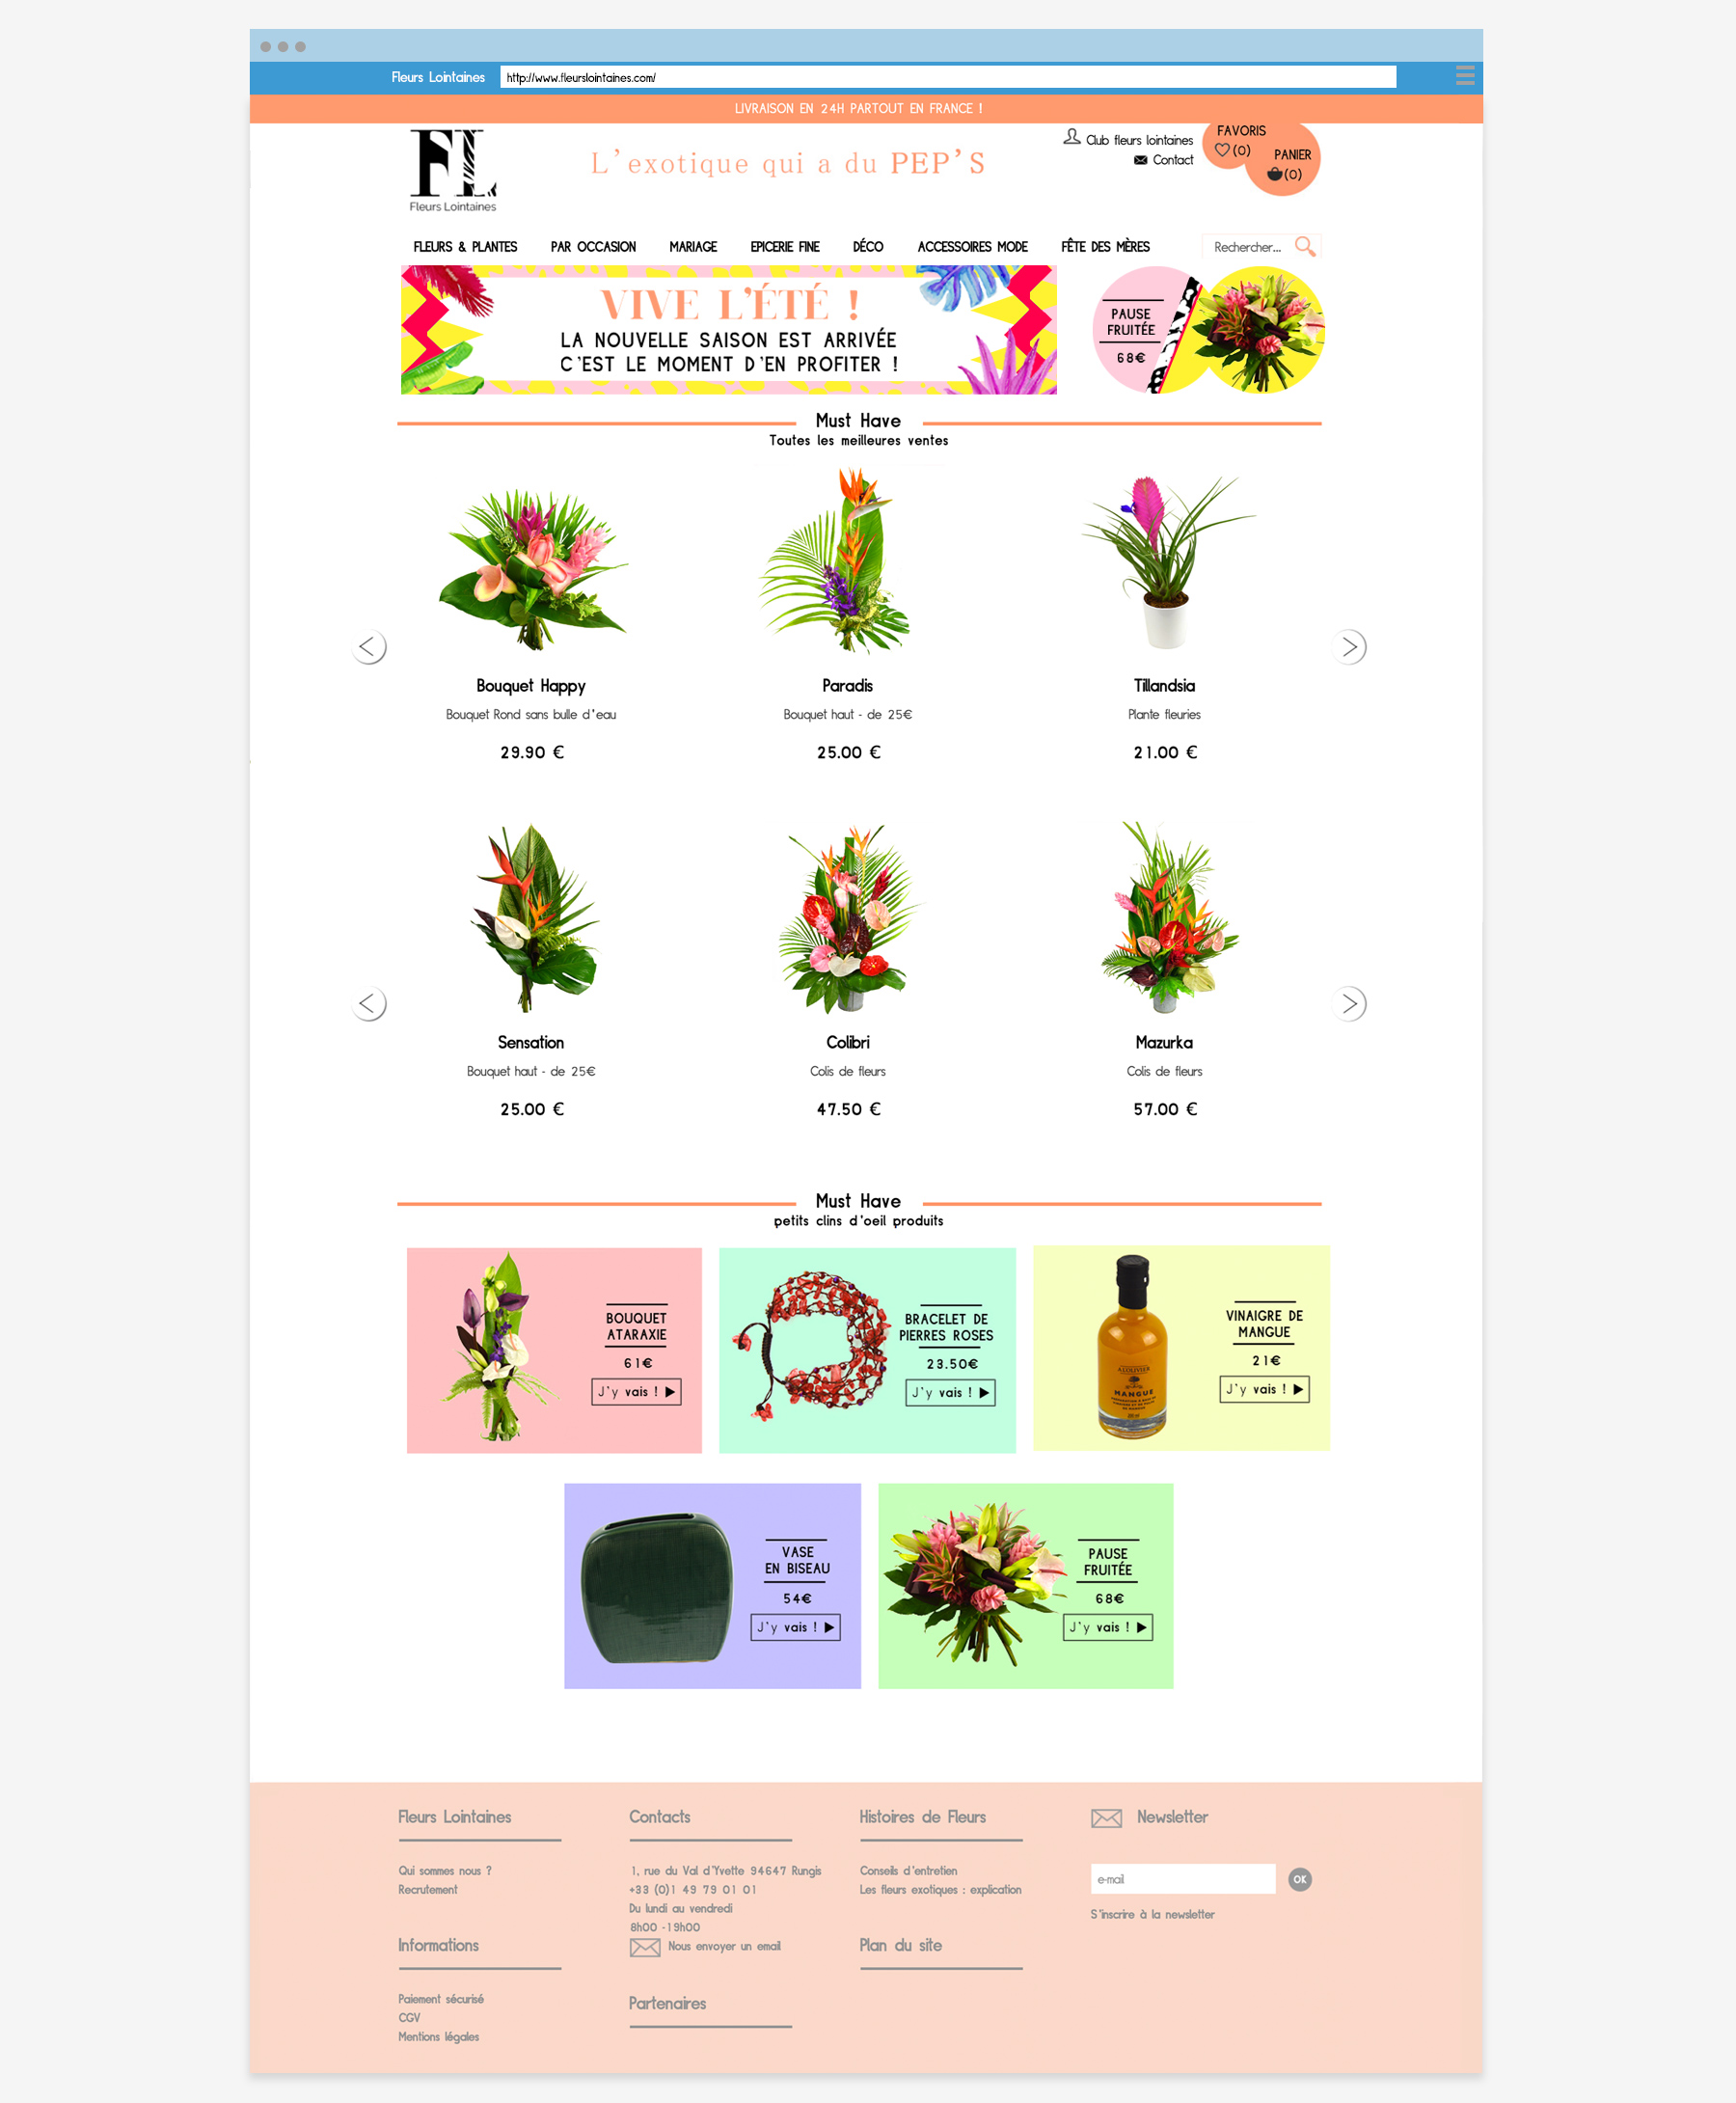 fleurs-lointaines-page-1